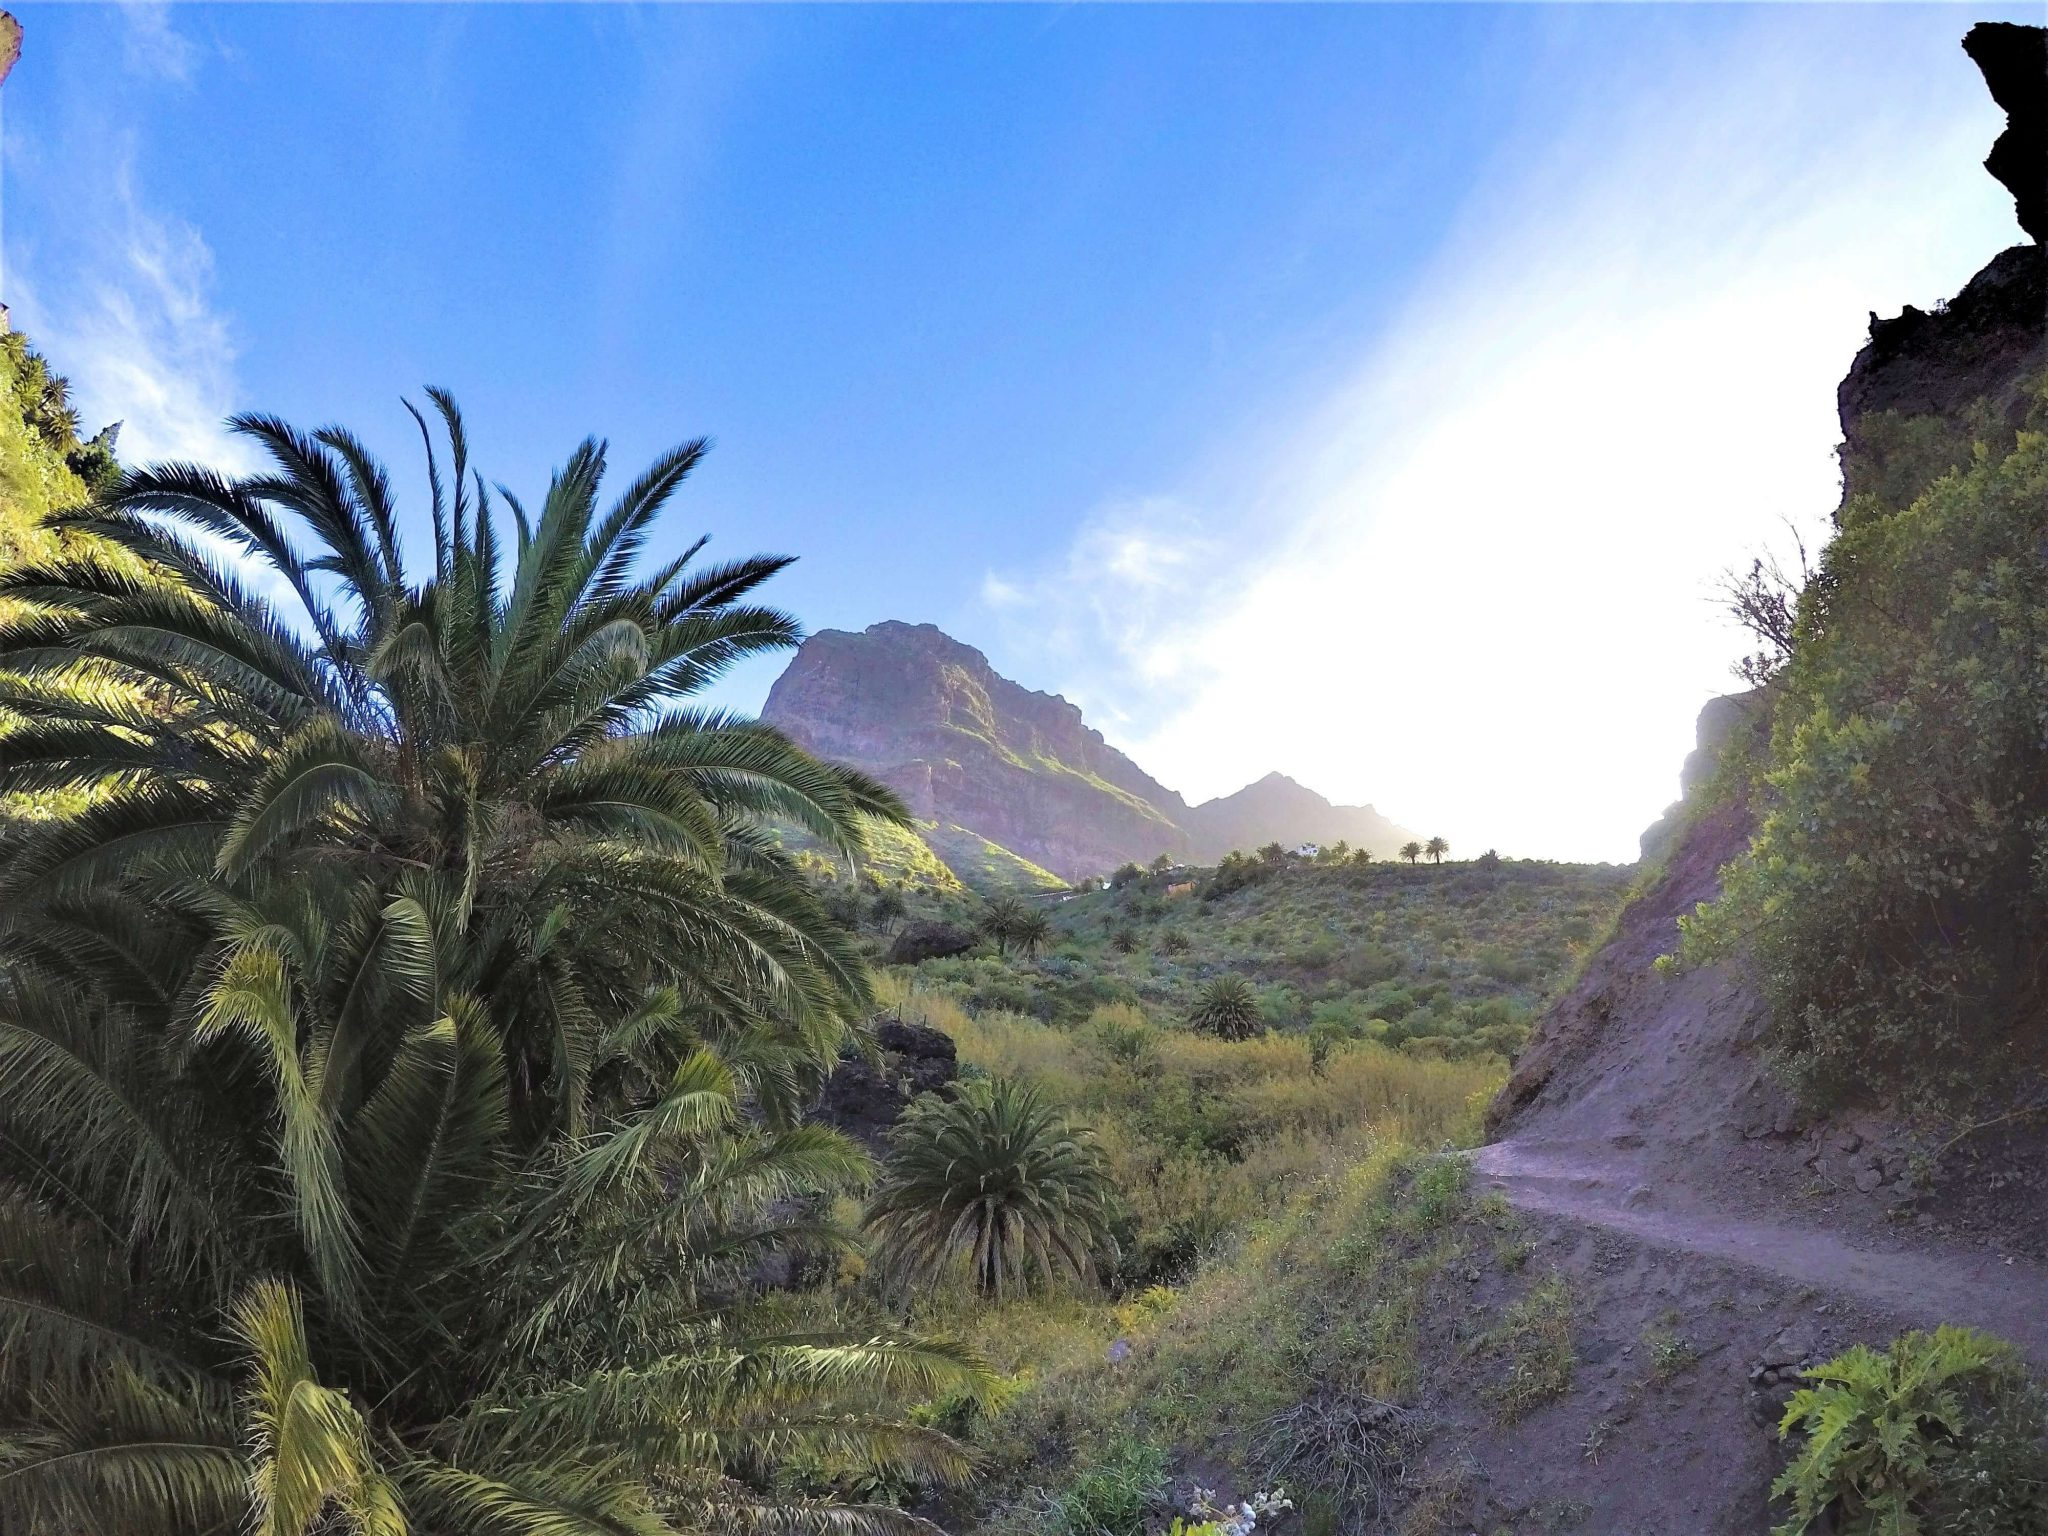 Masca Valley, Tenerife